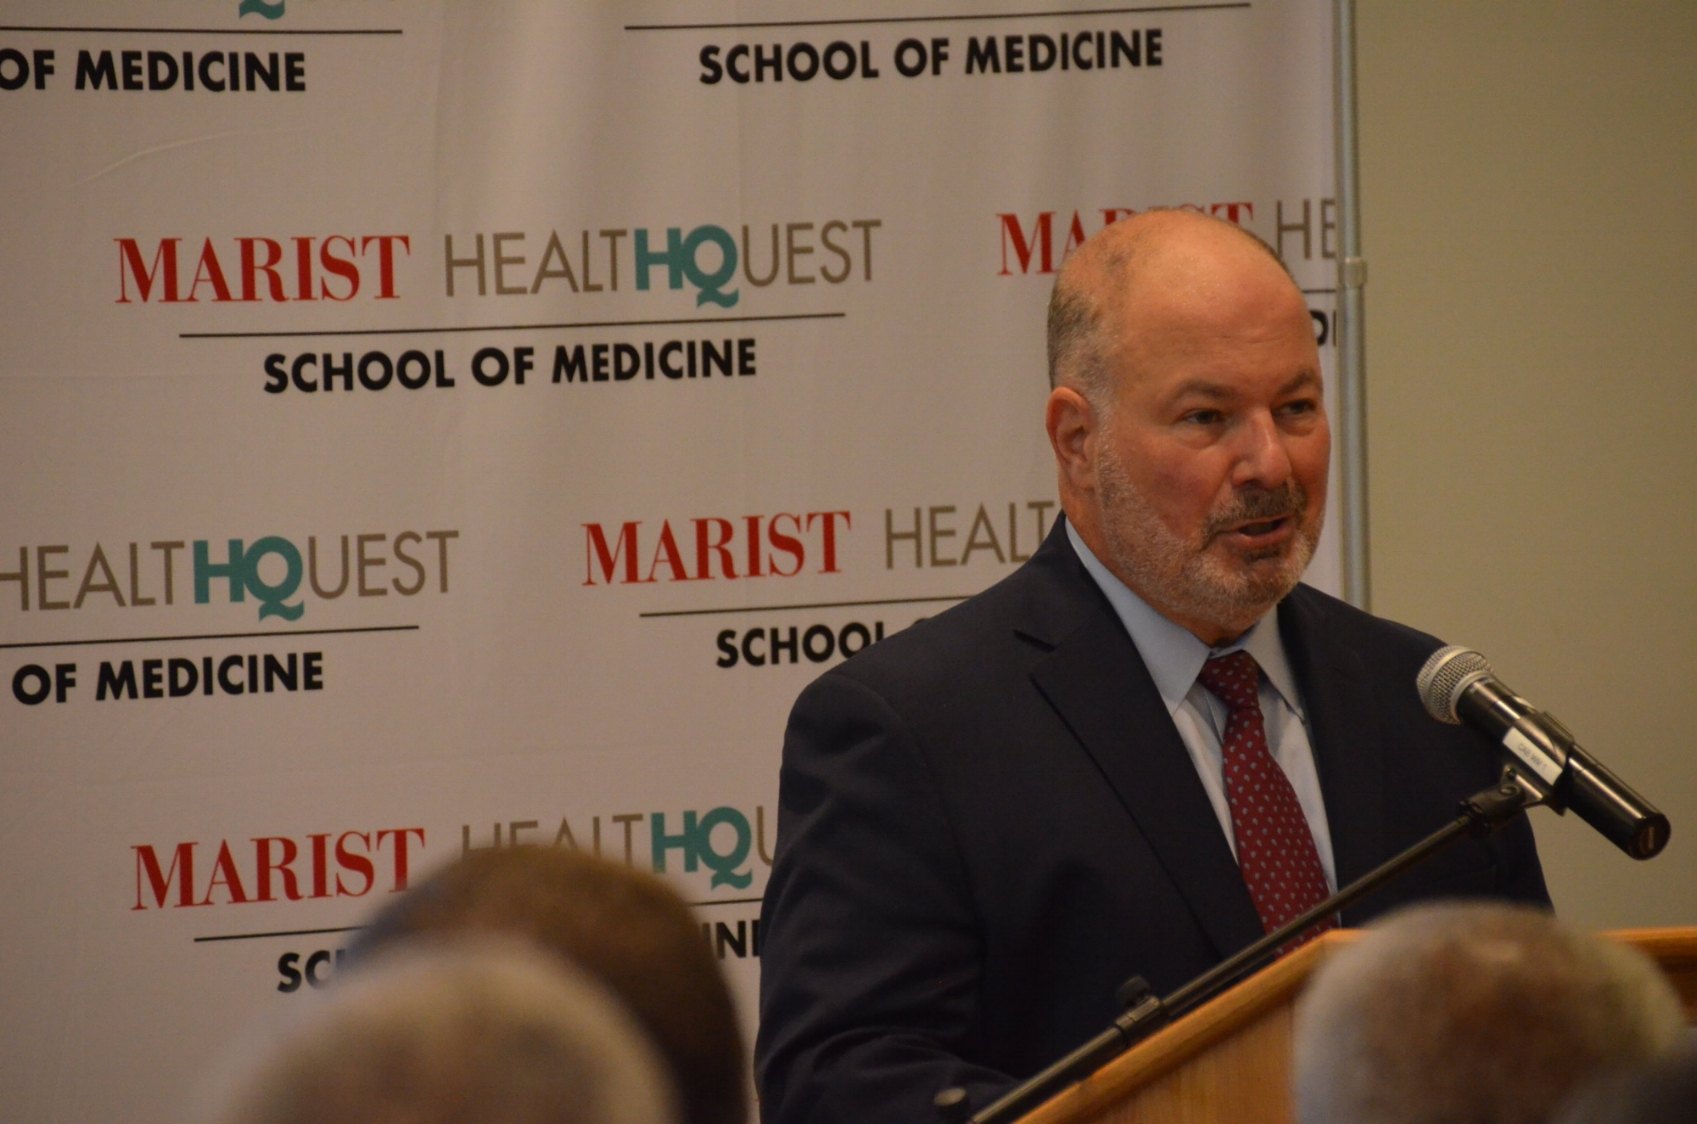 Marist College President David Yellen announcing the Marist Health Quest School of Medicine. Photo by Alexandria Watts.